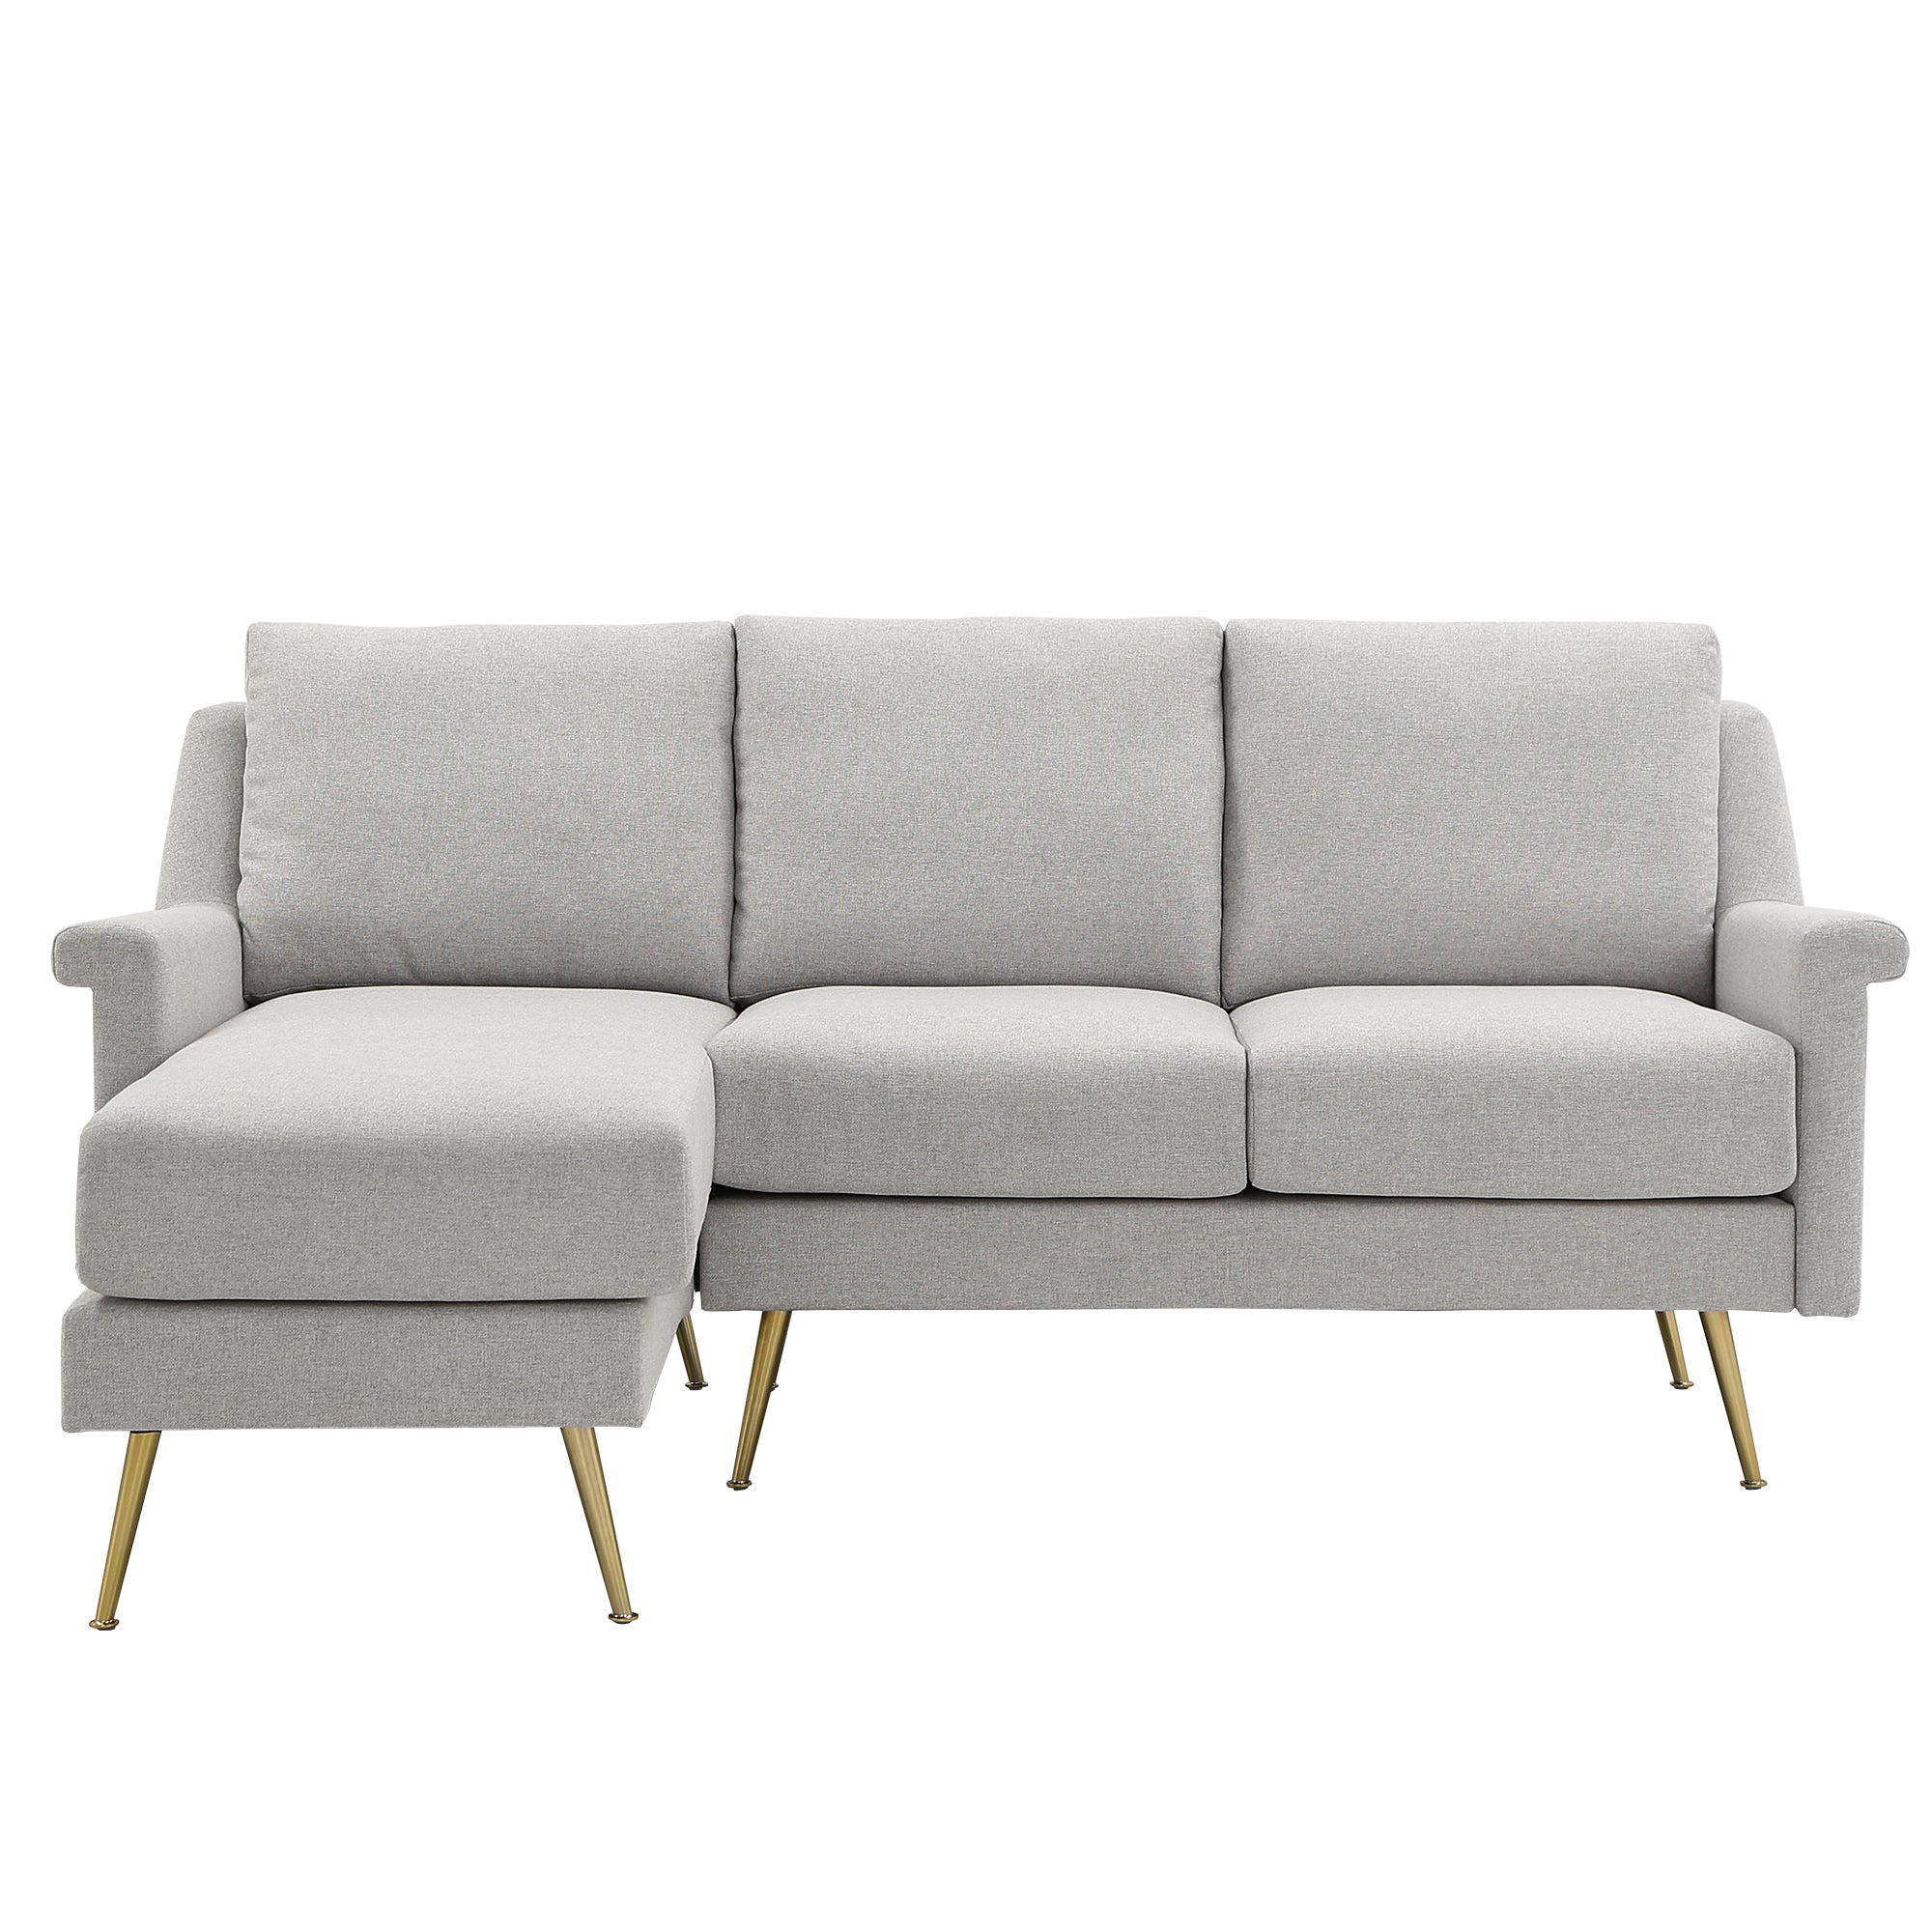 Grey Fabric Reversible Sectional Sofa with Gold Metal Legs - 3-Seat